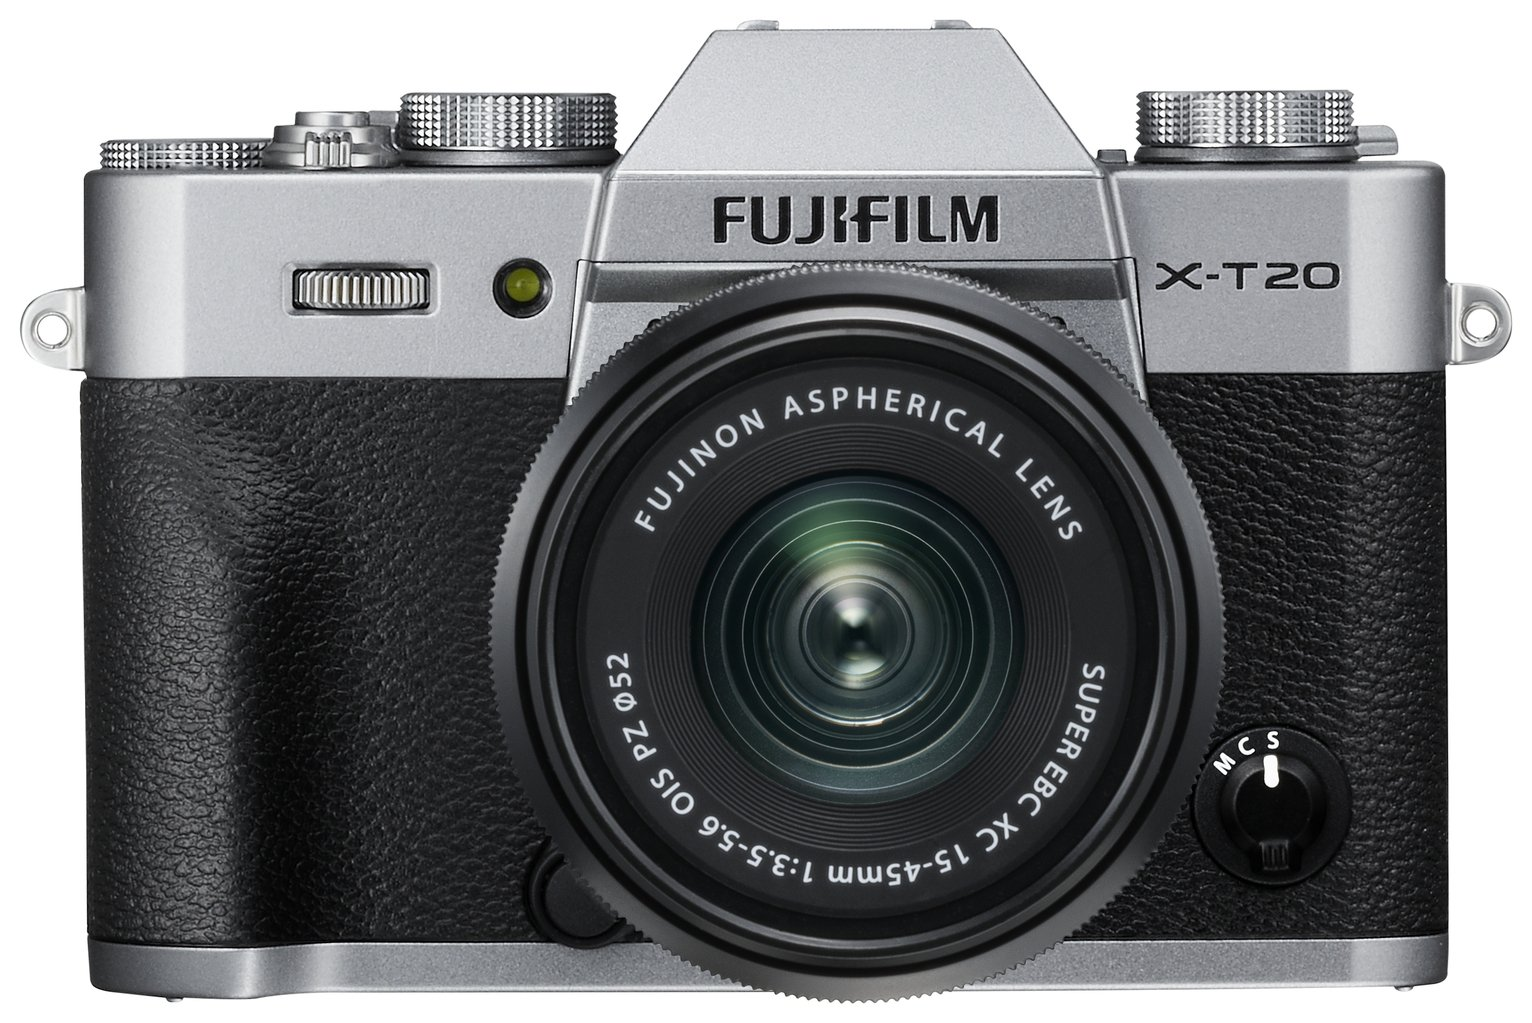 Fujifilm X-T20 24.3MP 15-45mm Compact System Camera - Silver